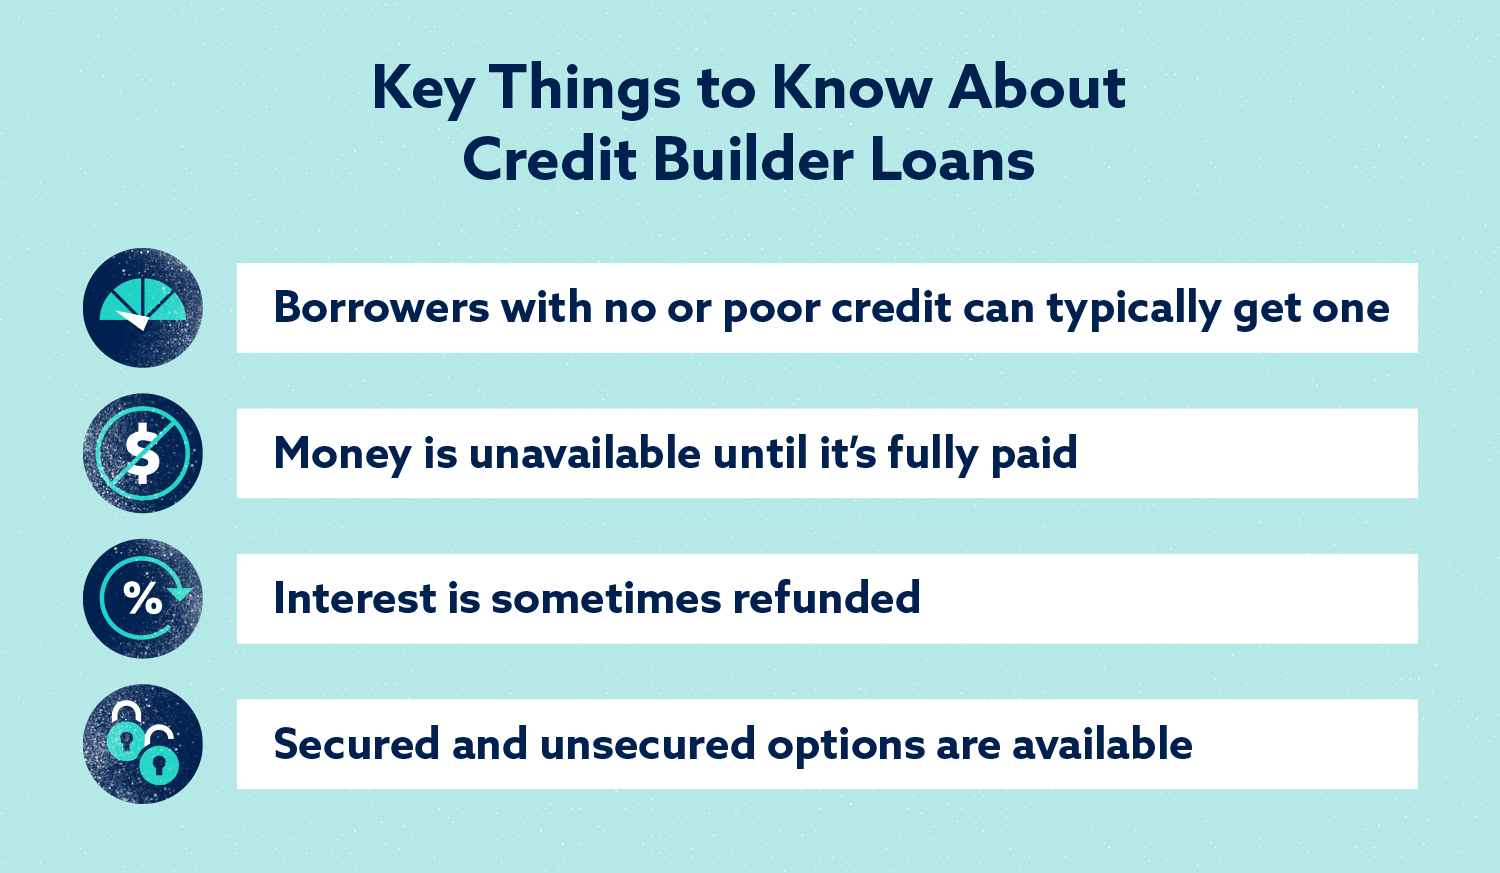 Key Things to Know About Credit Builder Loans Image